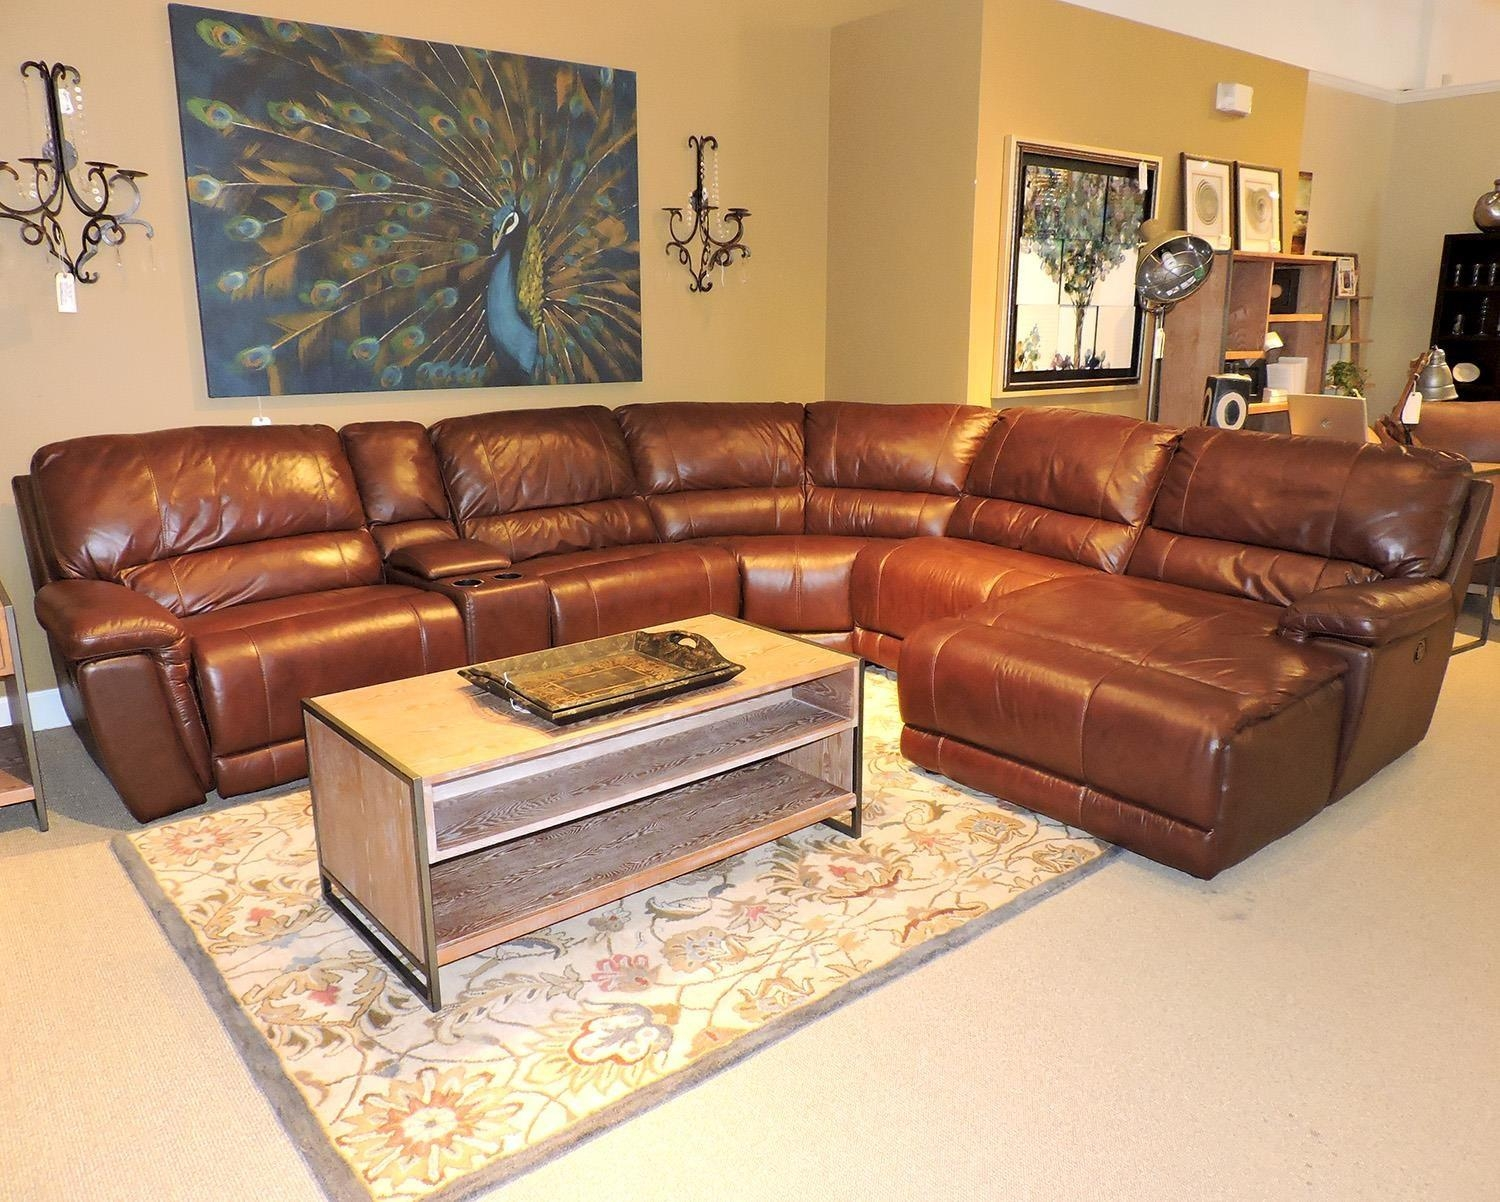 Sofas | Washington Dc, Northern Virginia, Maryland And Fairfax Va With Regard To Sofa Maryland (View 5 of 20)